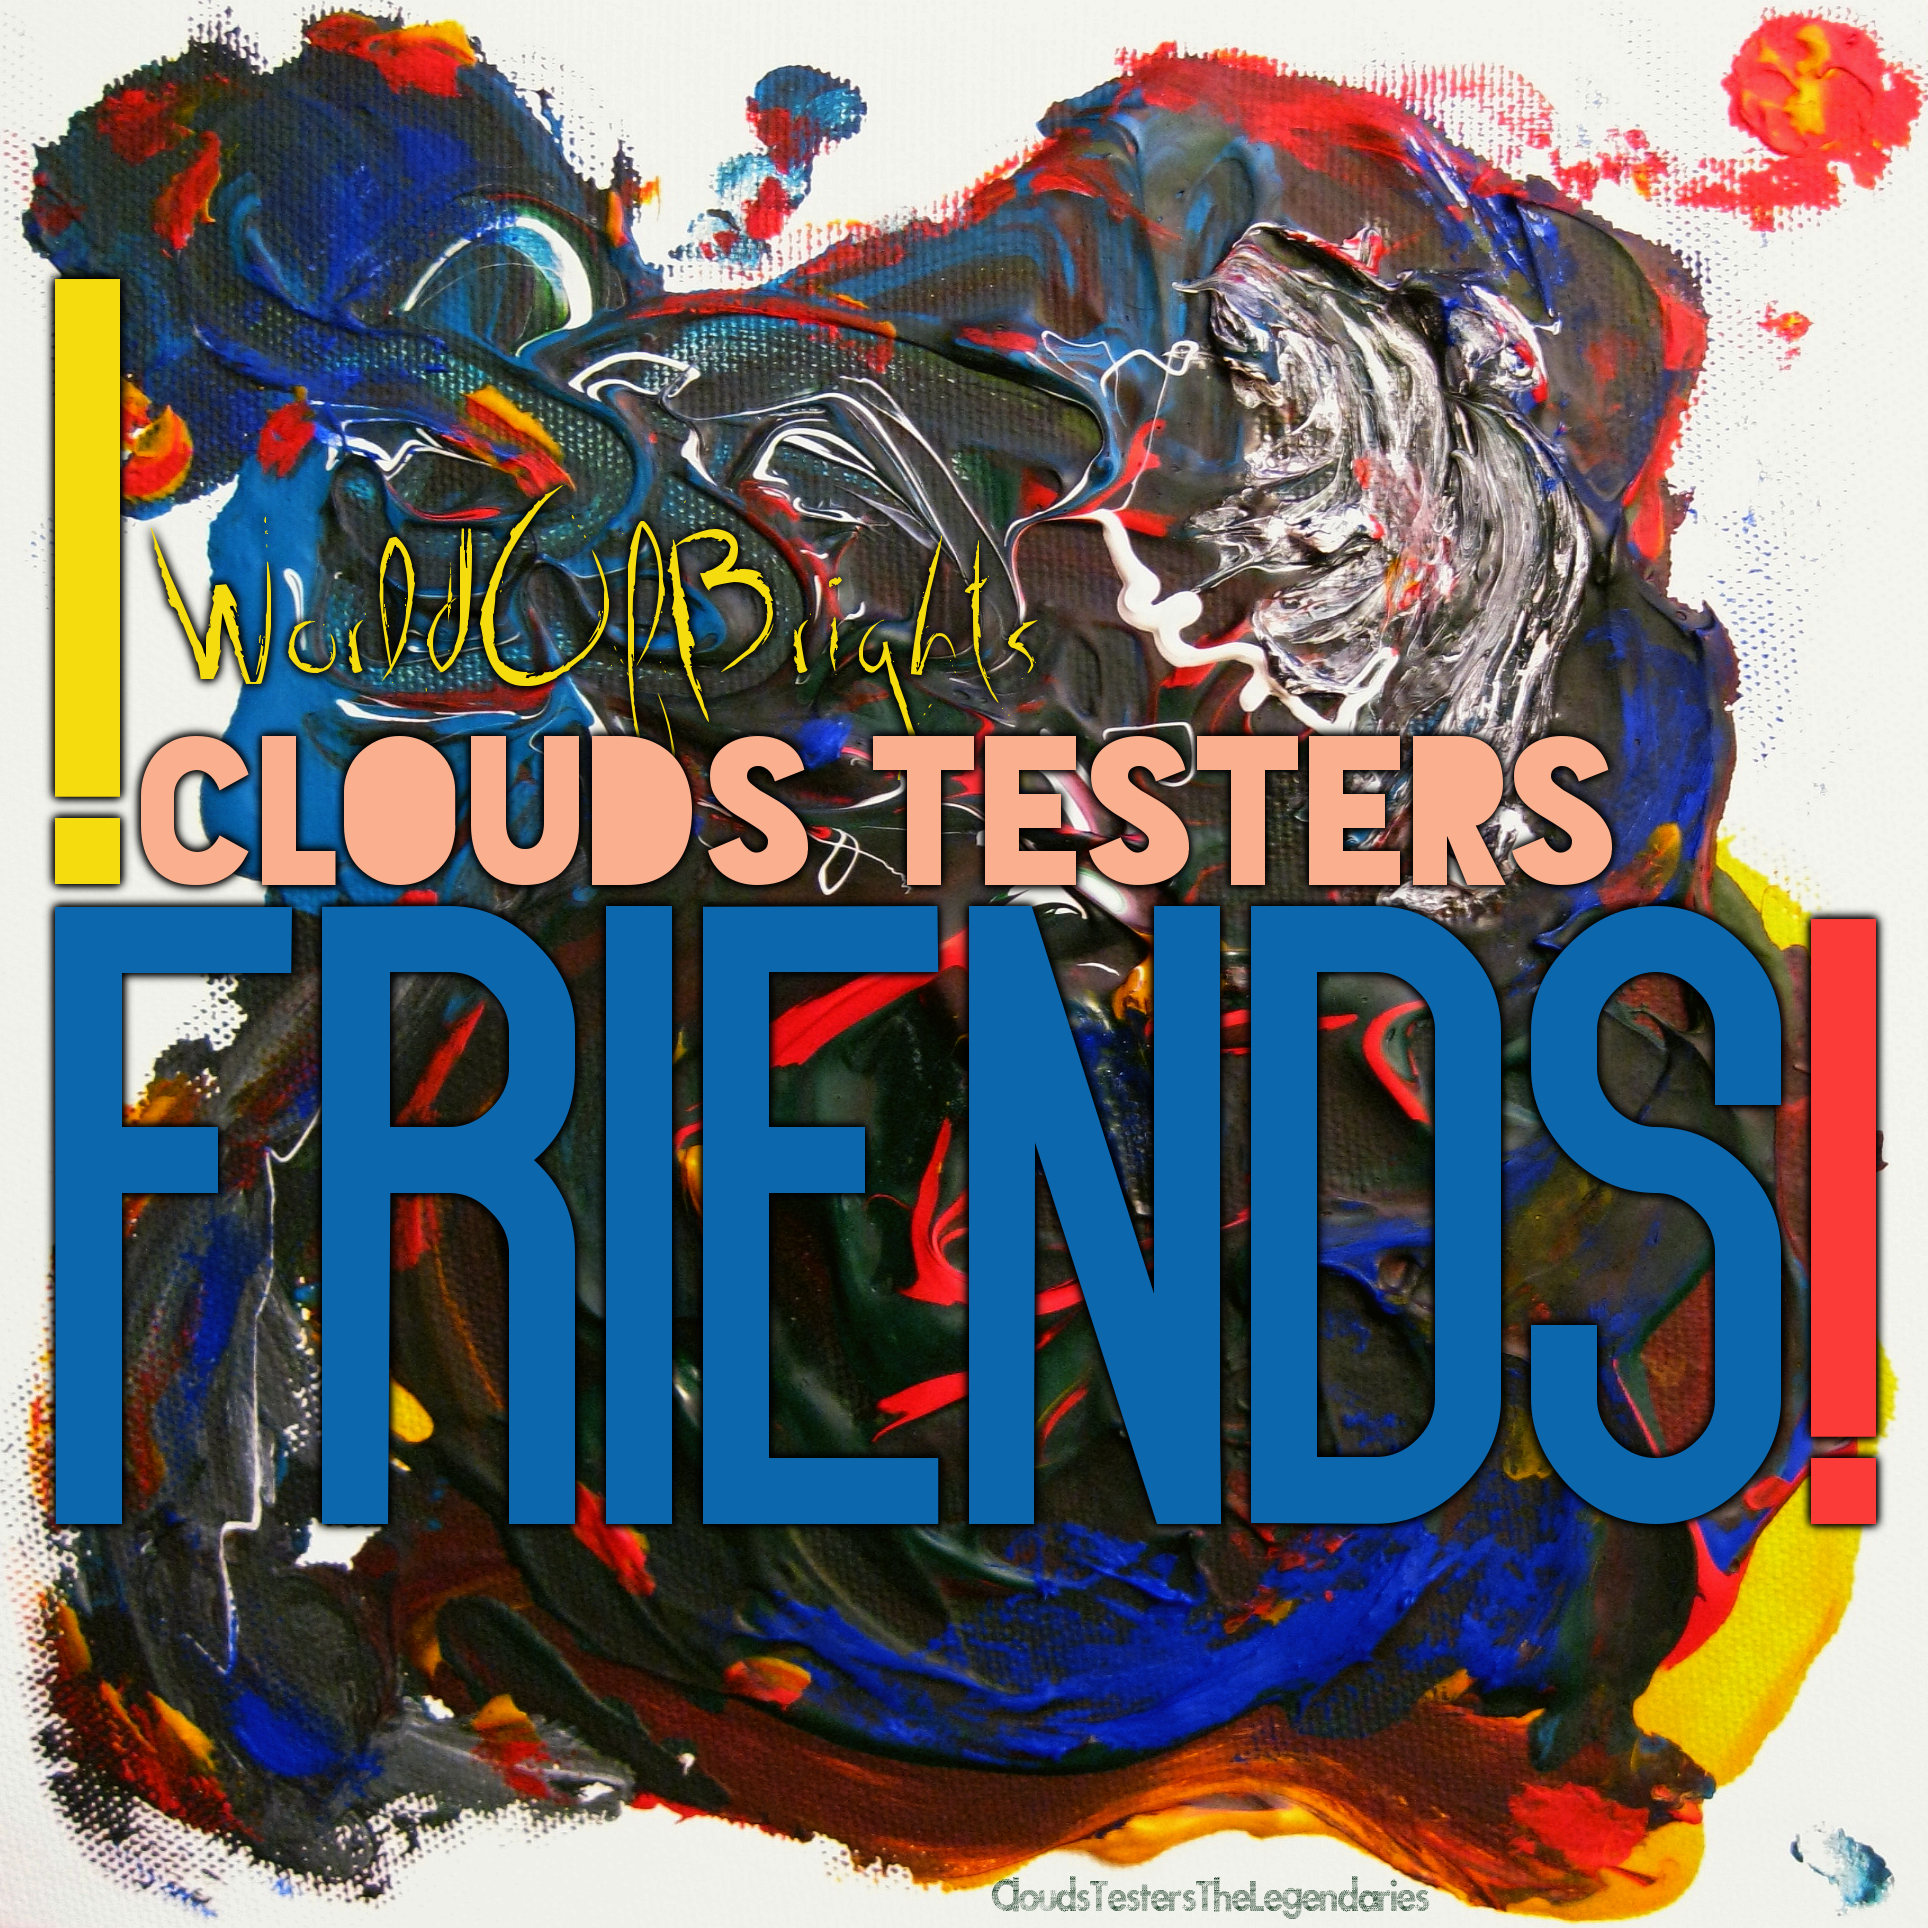 Clouds Testers - Friends! by WorldOfBrights